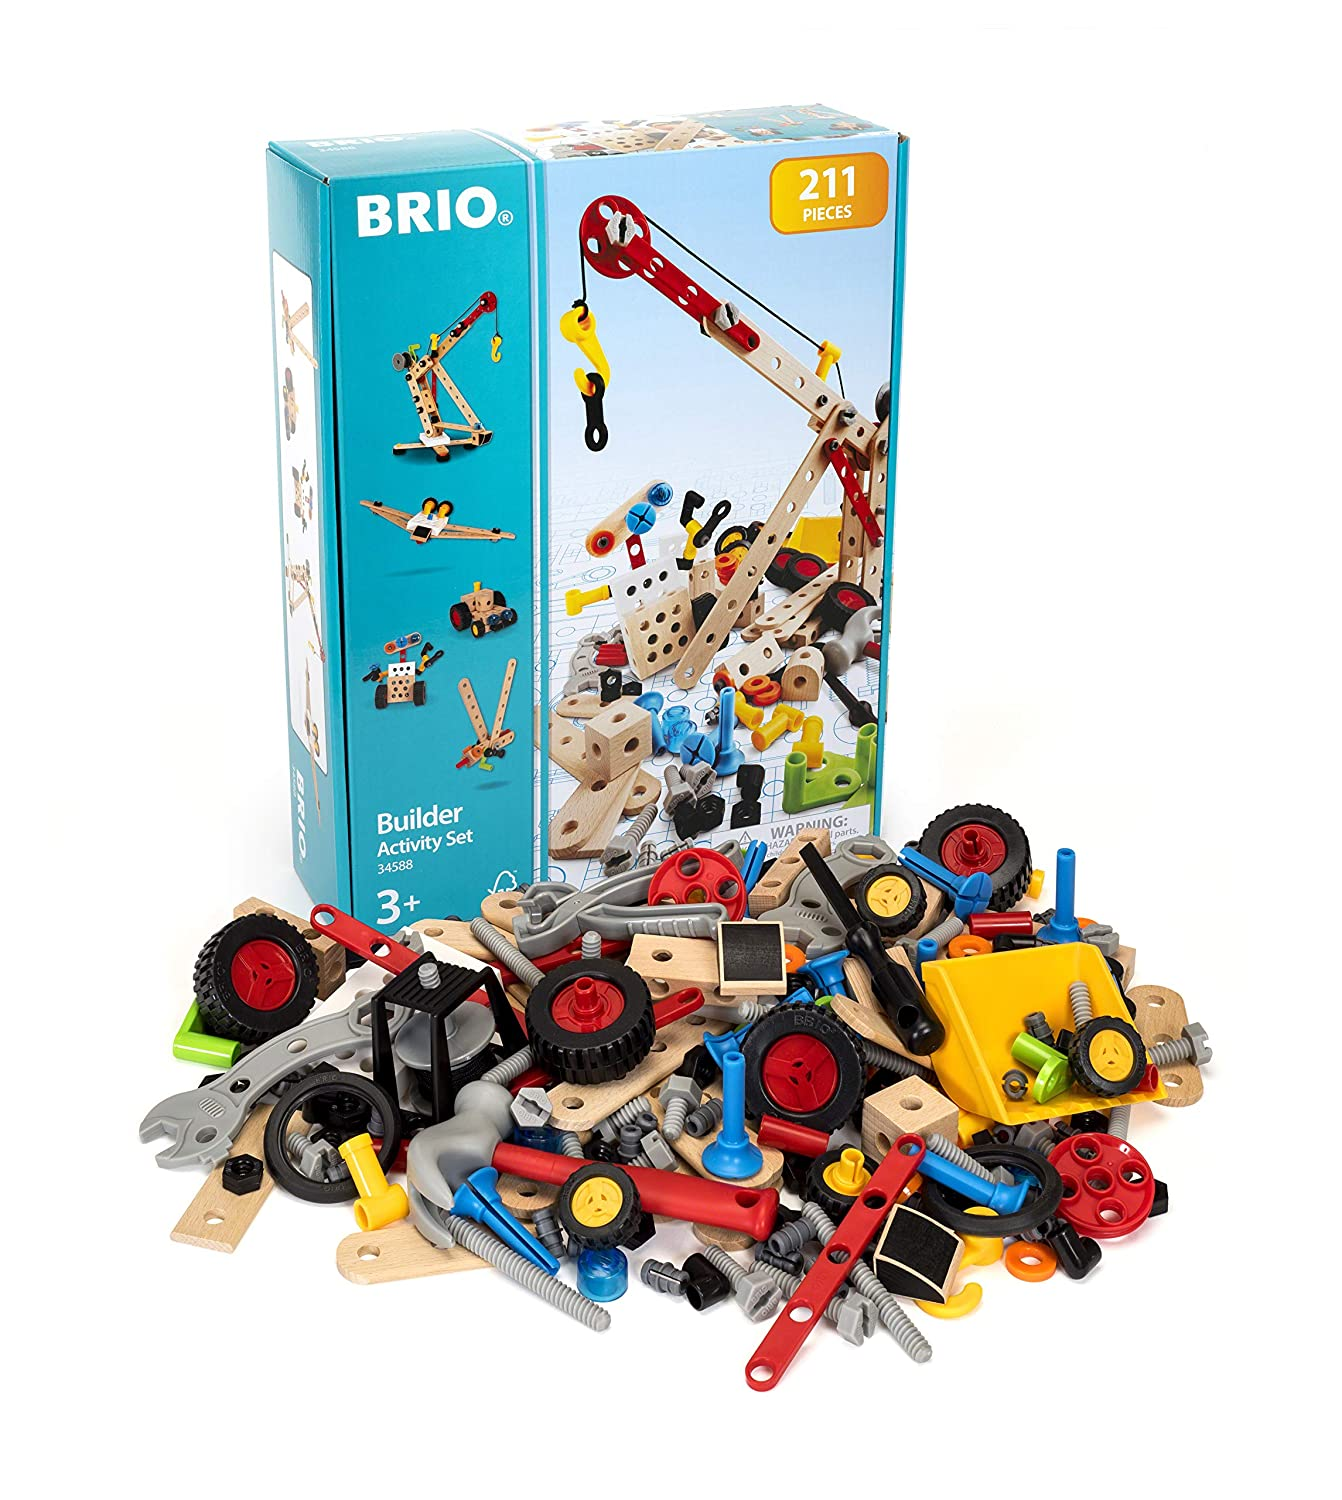 BRIO Builder 34588 - Builder Activity Set - 211 Piece Building Set STEM Toy with Wood and Plastic Piecesfor Kids Ages 3 and Up